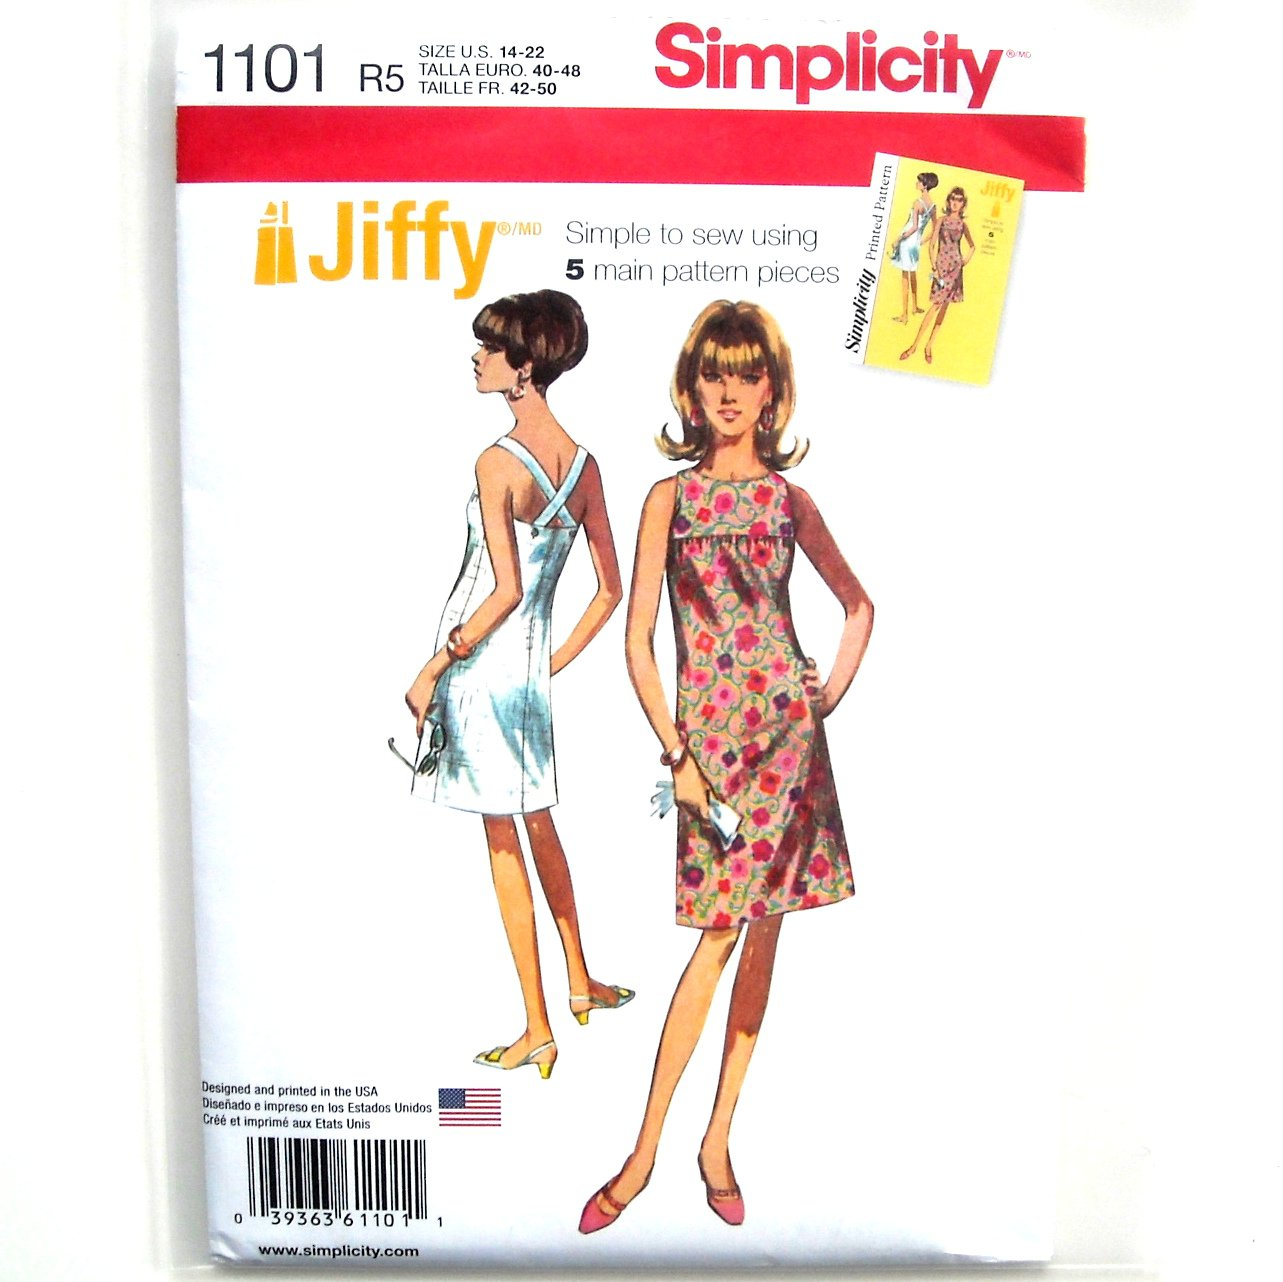 Misses 1960s Jiffy Dress 14 - 22 Simplicity Sewing Pattern 1101